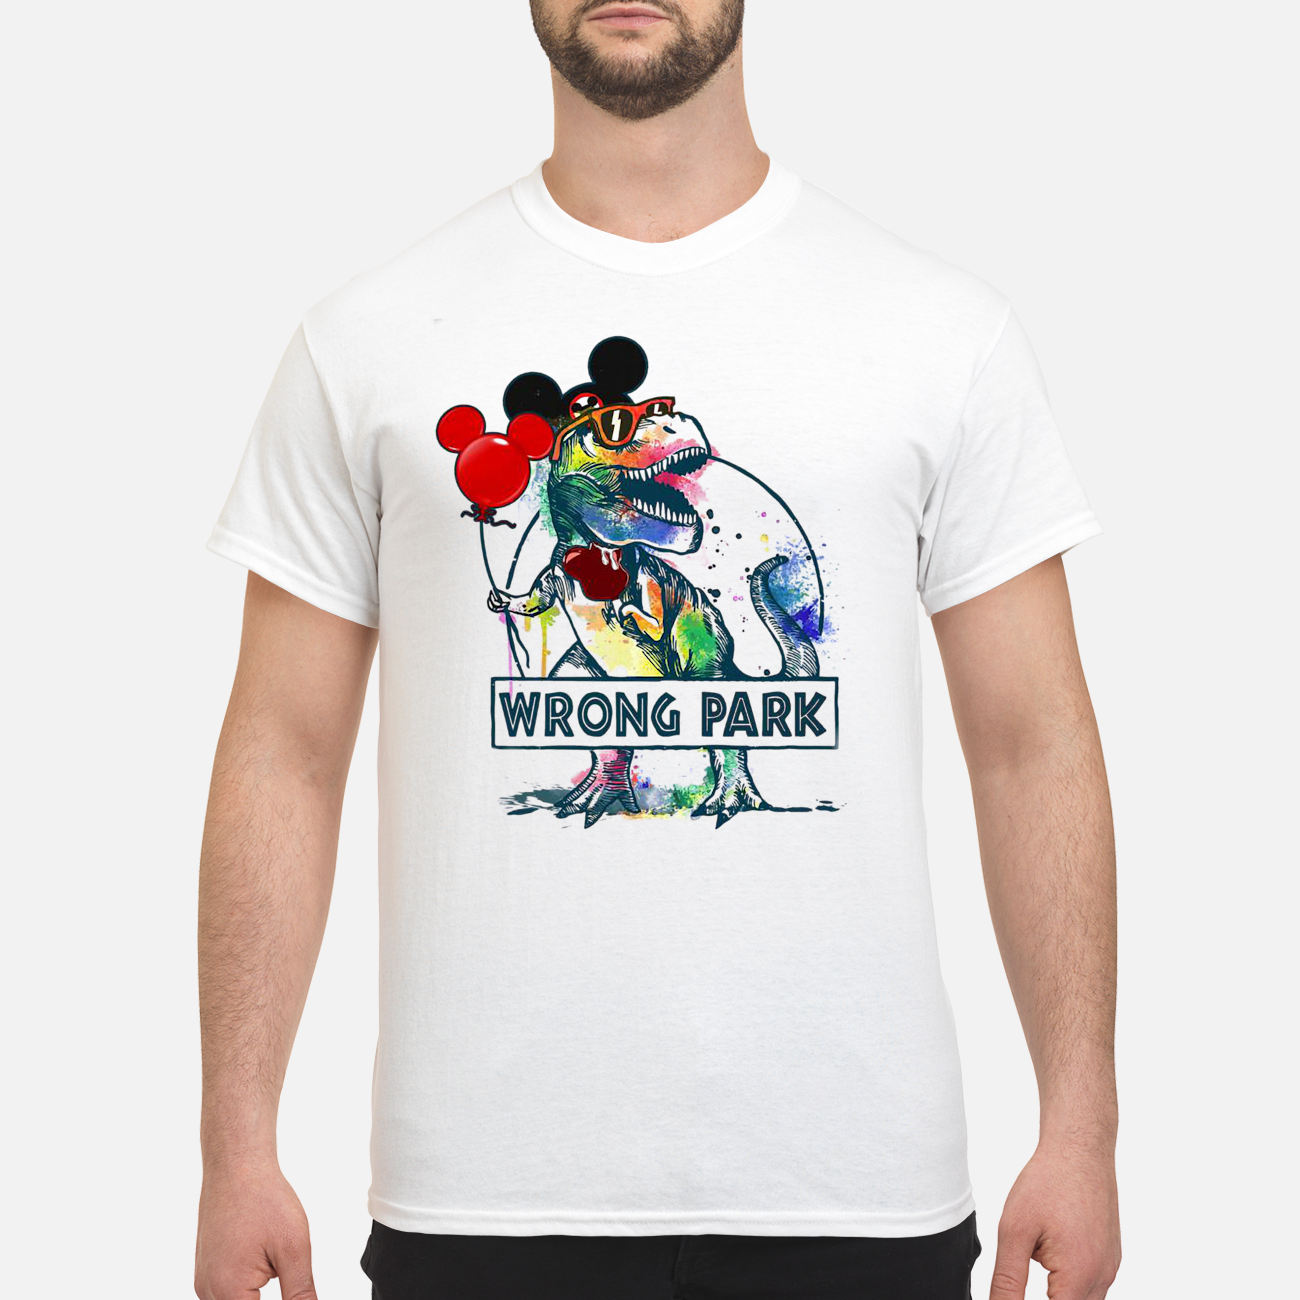 c4669387d Dinosaur T-rex and Mickey mouse wrong park shirt